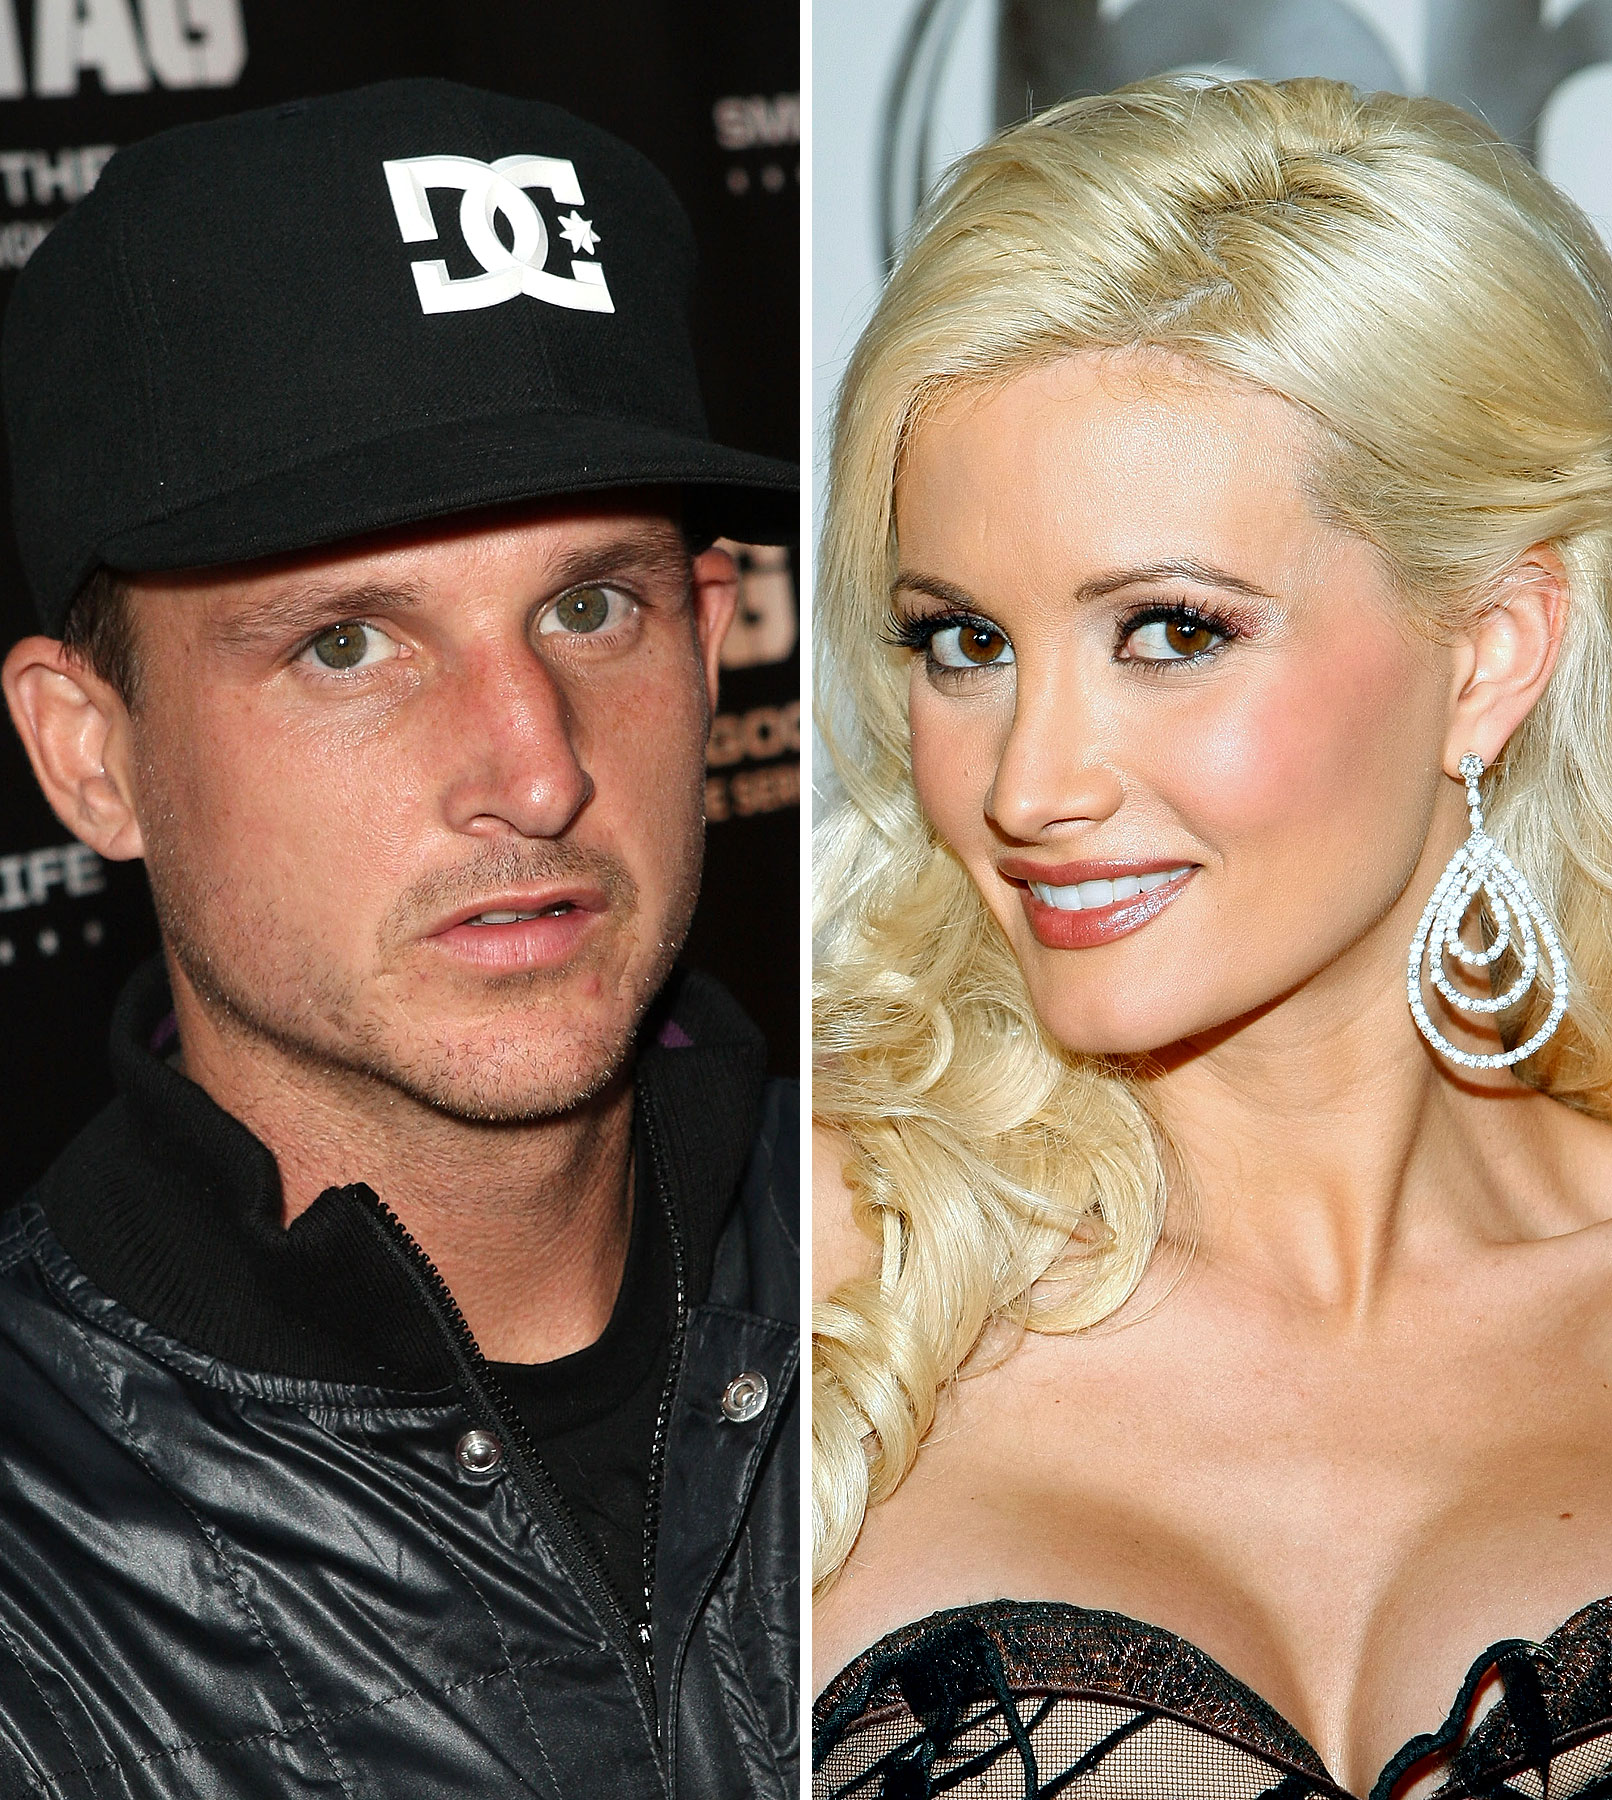 Hookup Alert: Holly Madison and Rob Dyrdek?